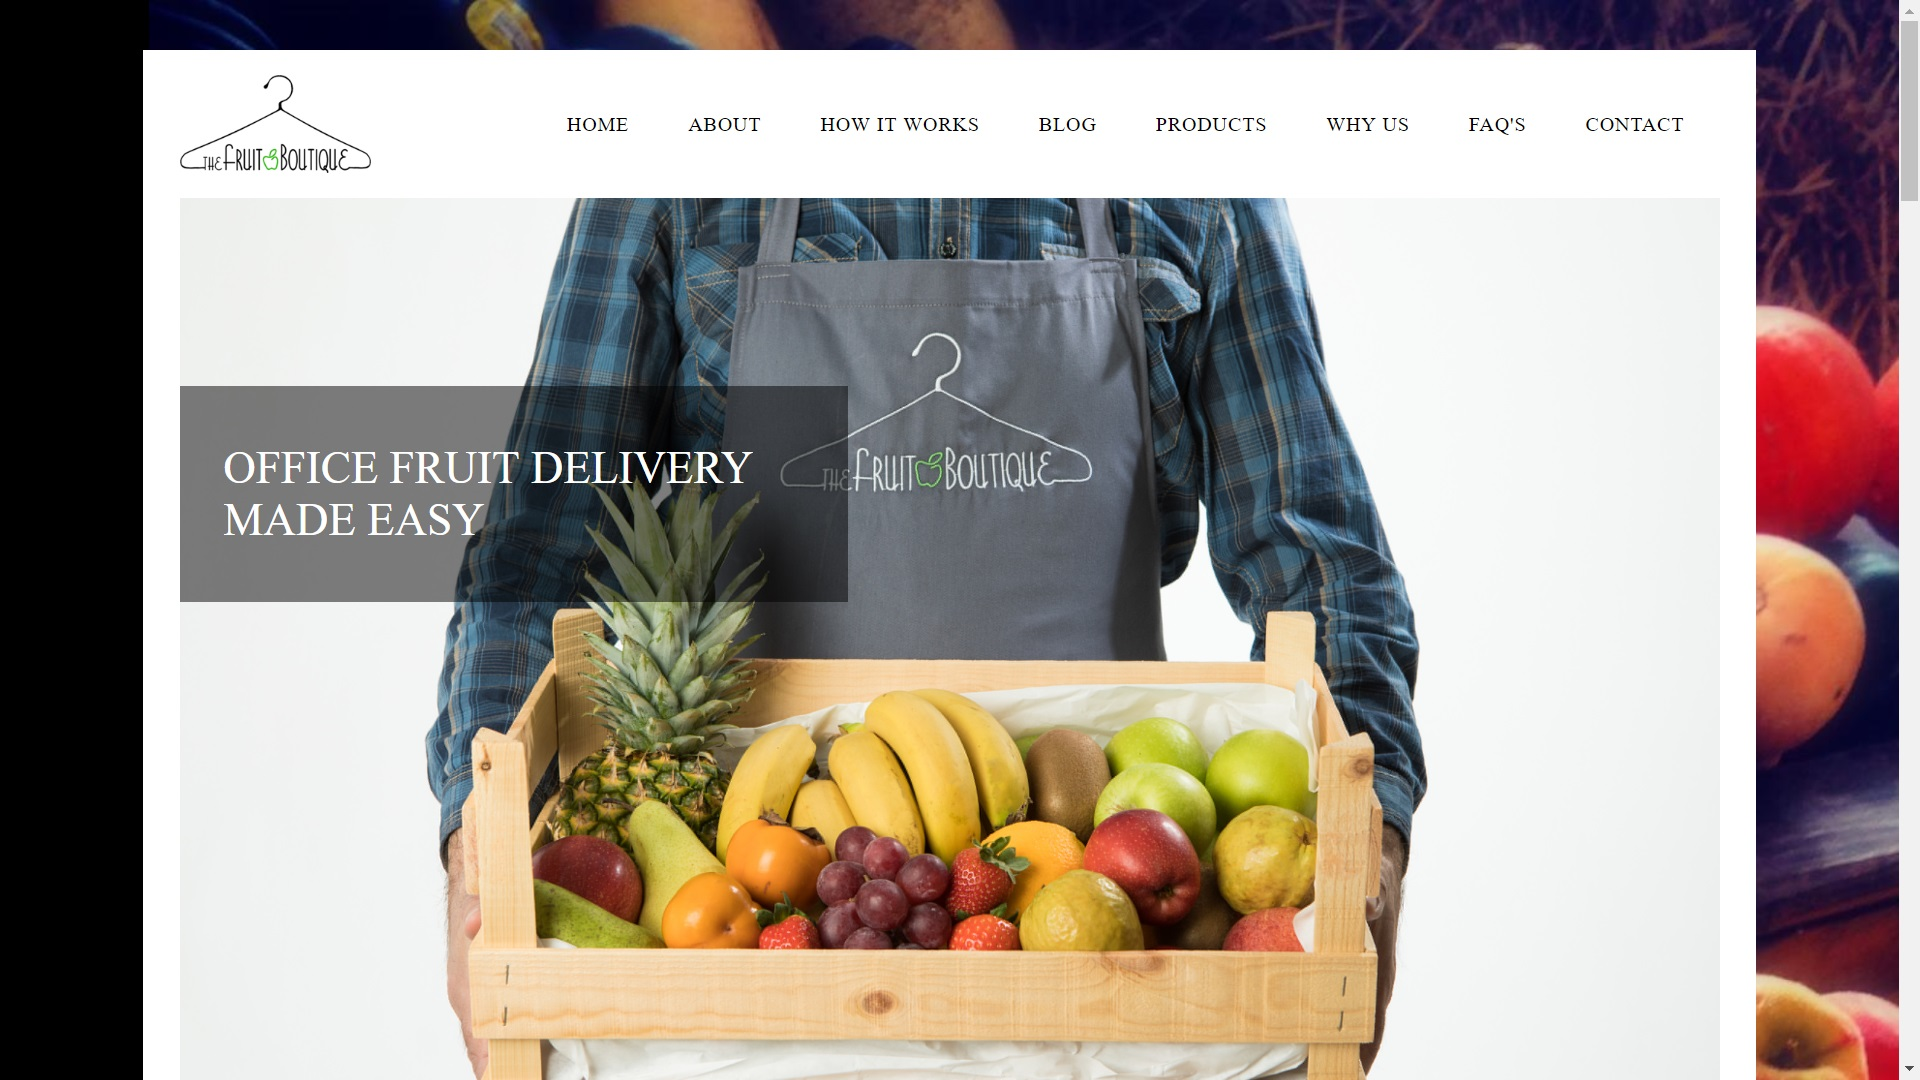 THEFRUITBOUTIQUE.COM